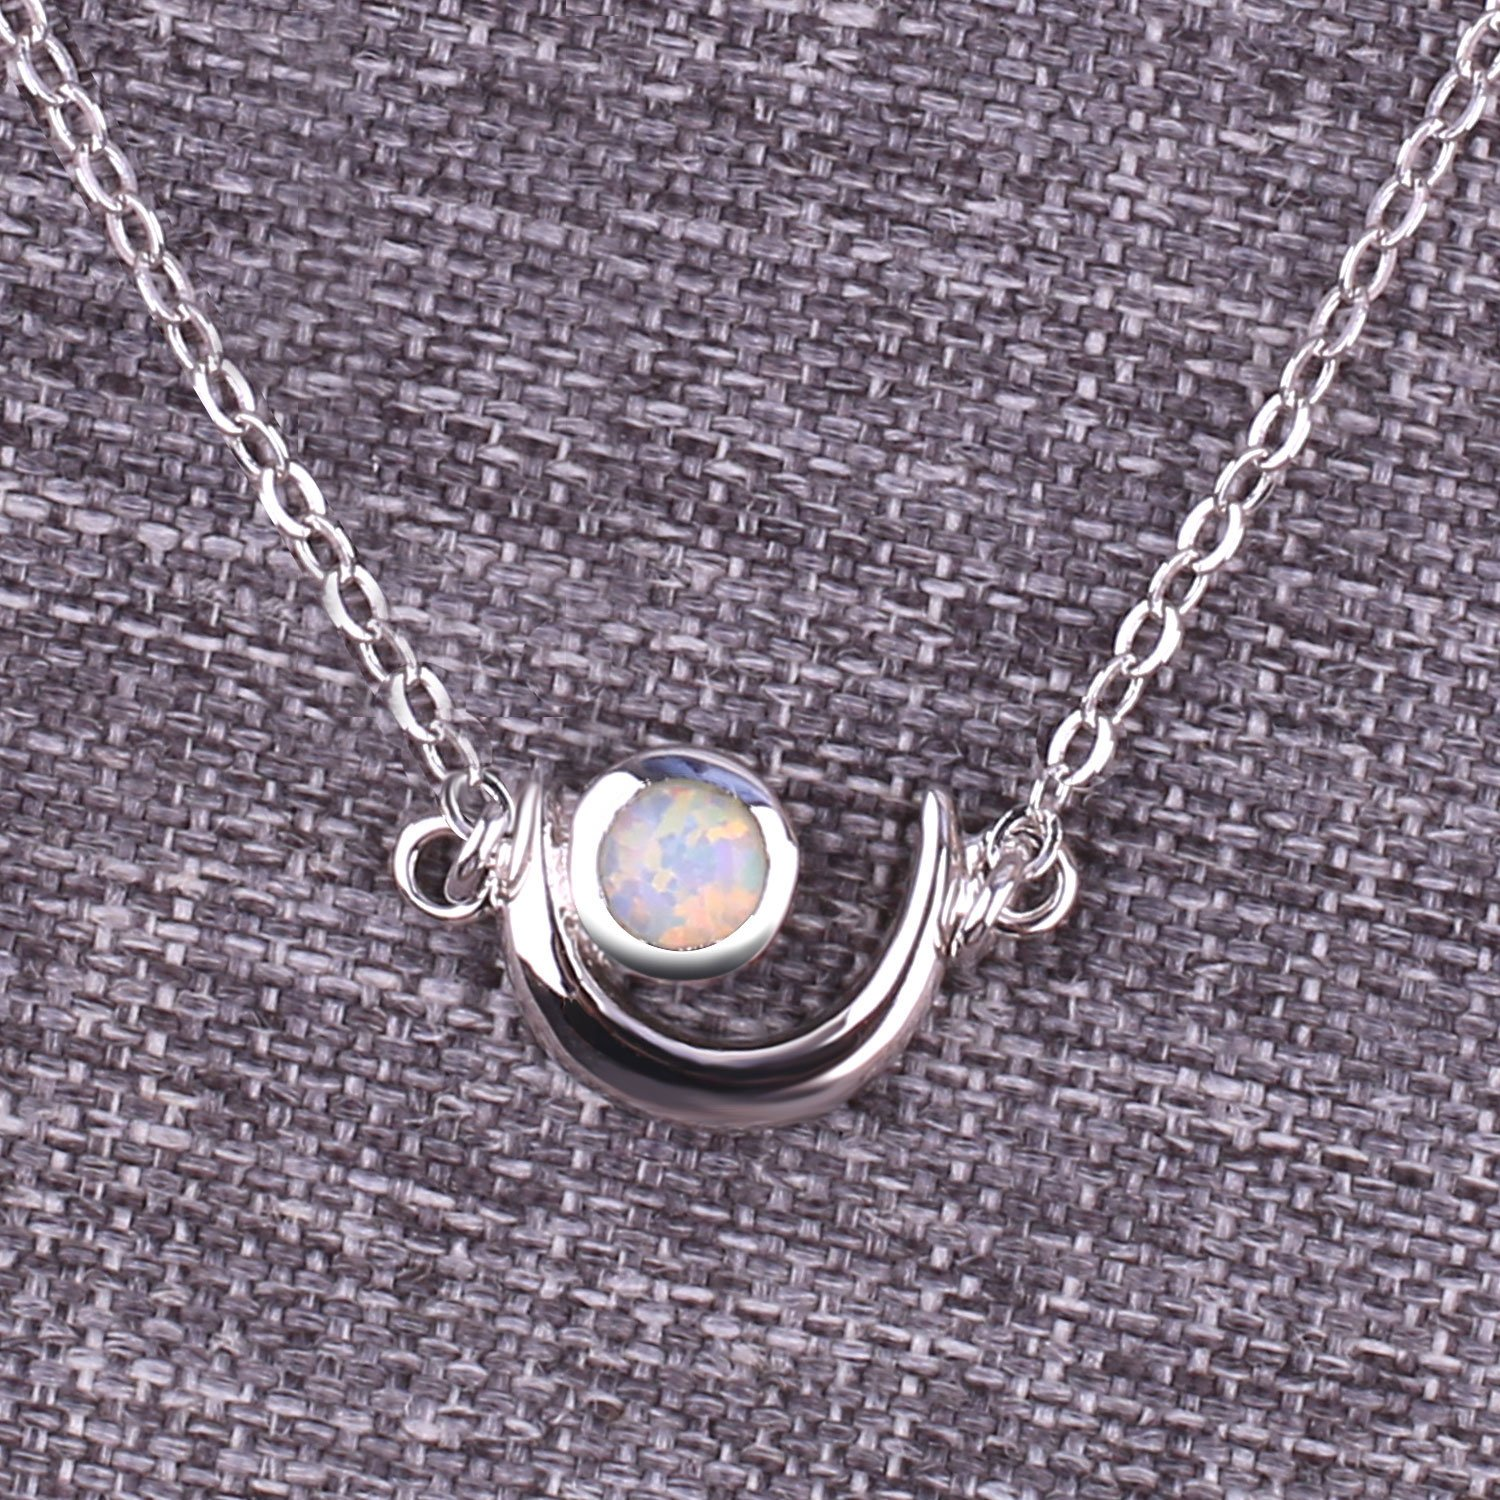 KELITCH Women Choker Necklace Syuthetic Opal /& Moon Oval Pendant with 16-18 Chain